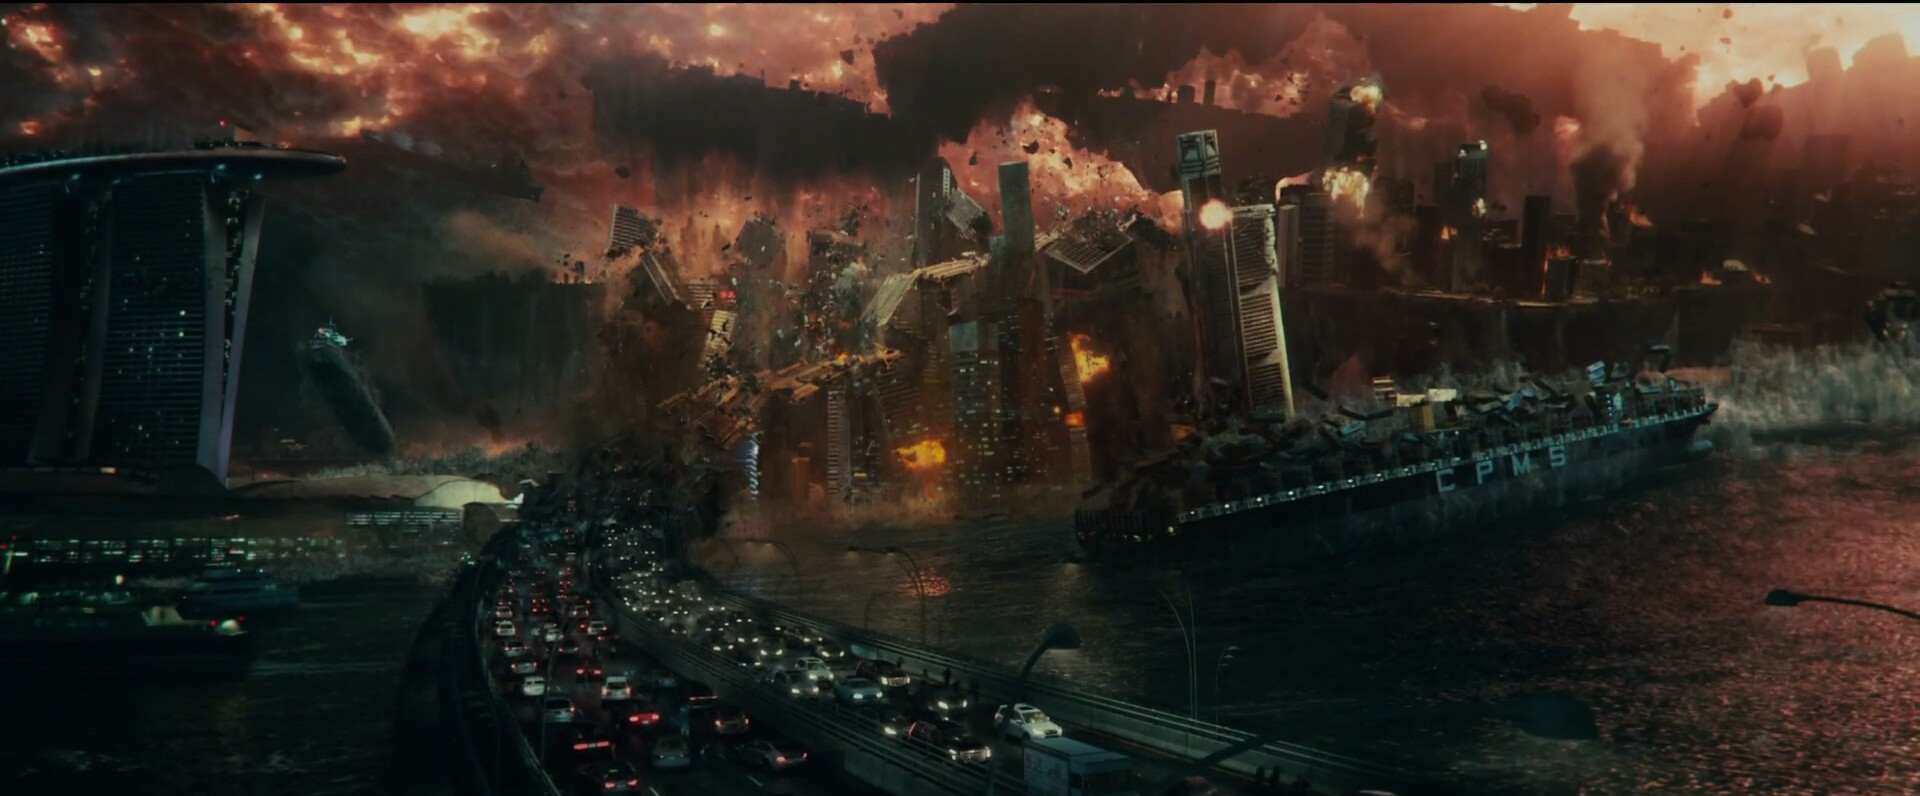 Aliens destroy cities in Independence Day: Resurgence TV Spot